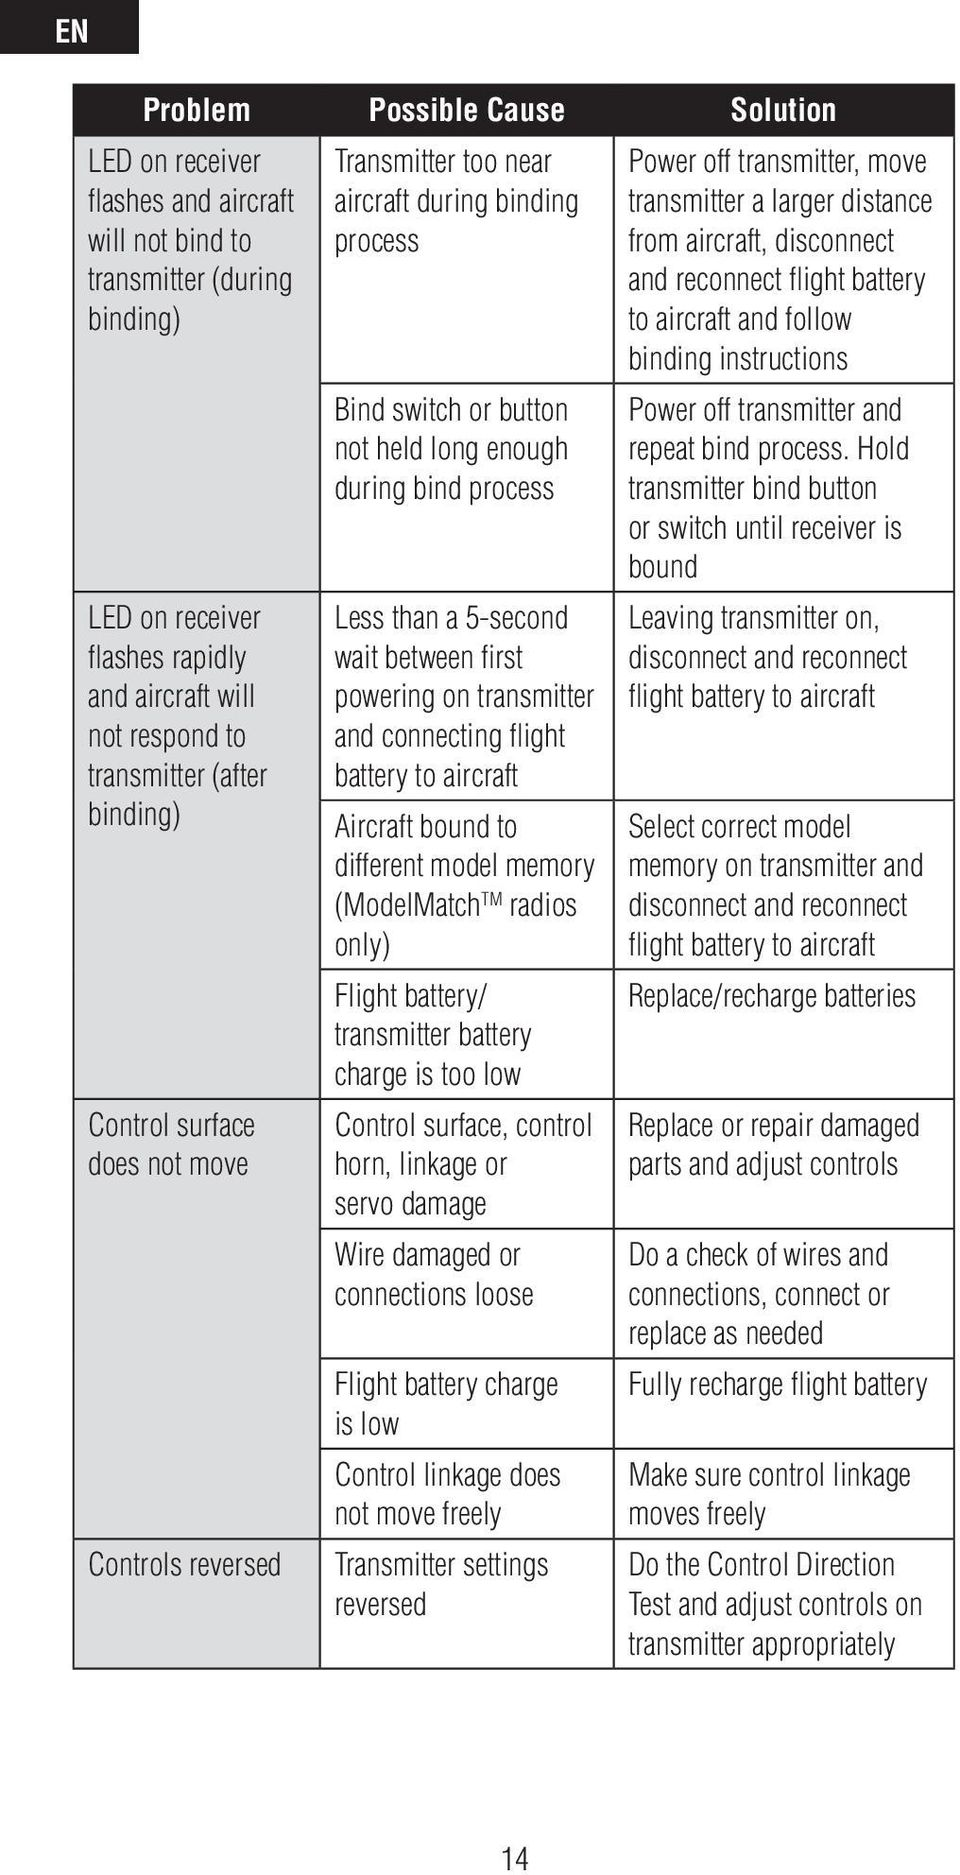 5-second wait between first powering on transmitter and connecting flight battery to aircraft Aircraft bound to different model memory (ModelMatch TM radios only) Flight battery/ transmitter battery